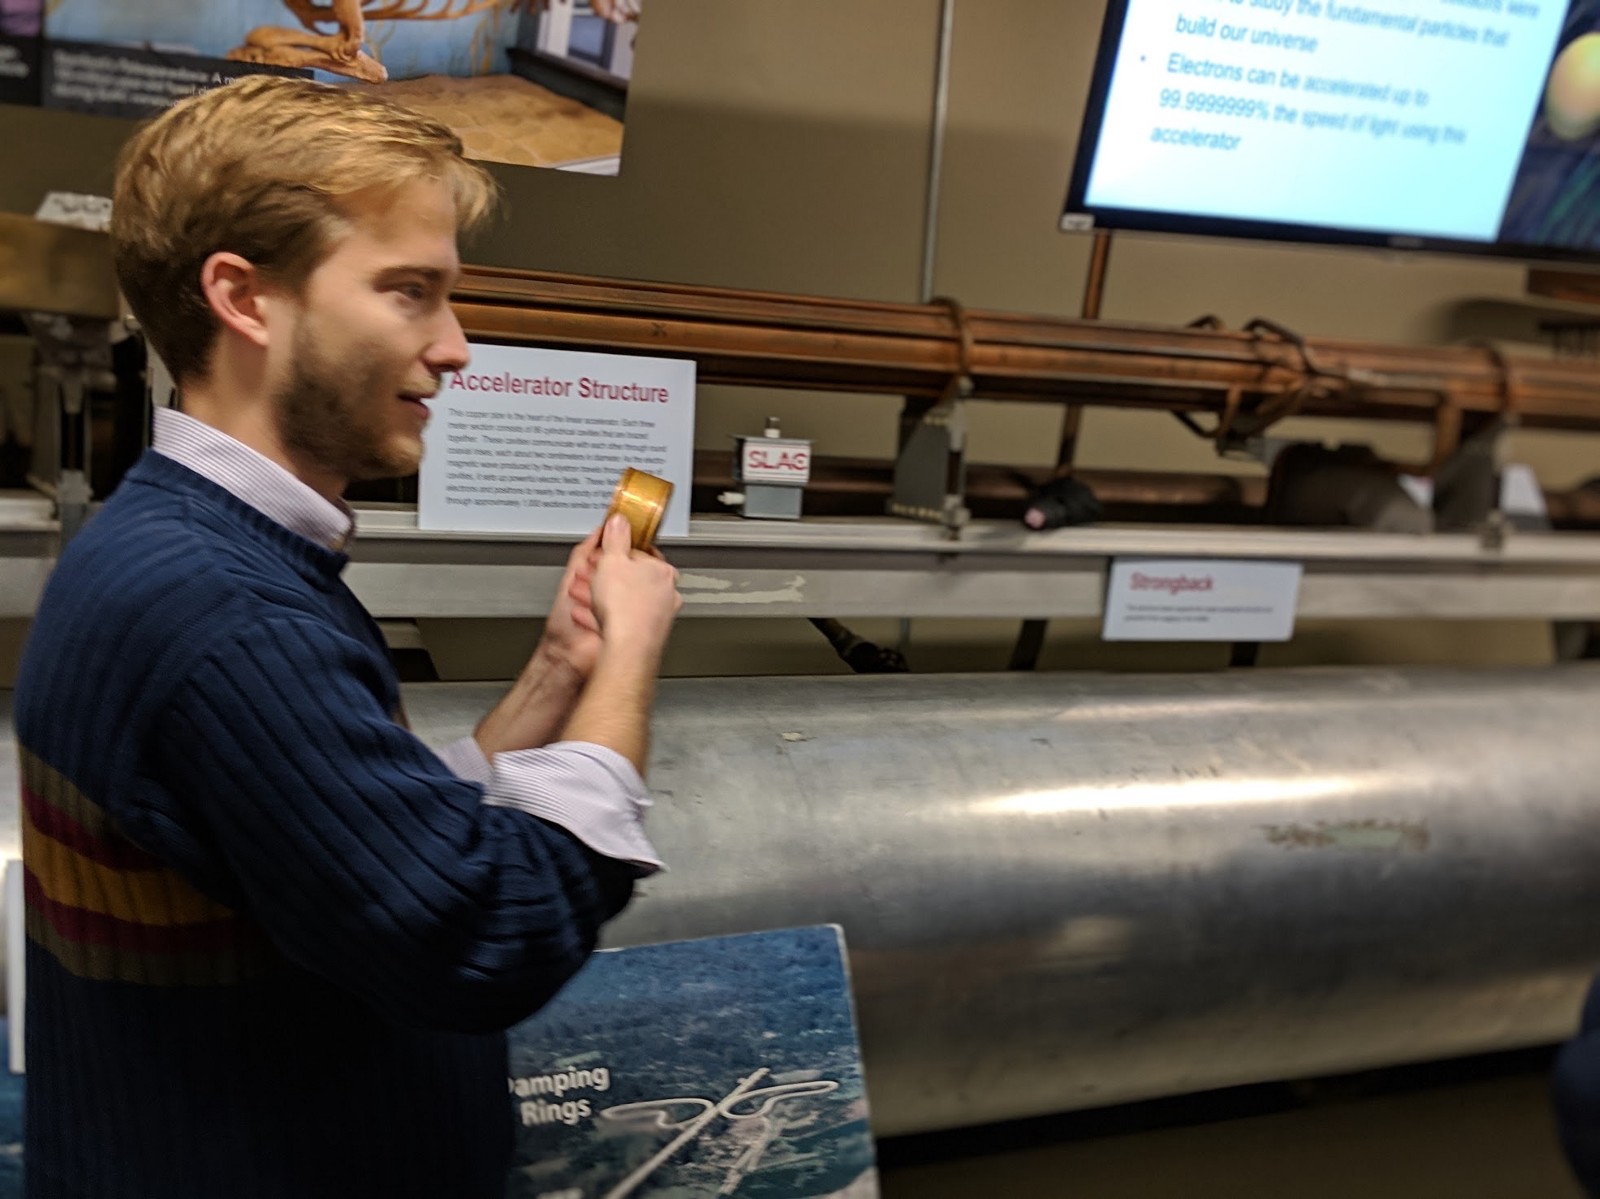 Michael Baumer, Ph.D in Physics at Stanford, explaining about how a particle accelerator works and why the research conducted there is important for mankind